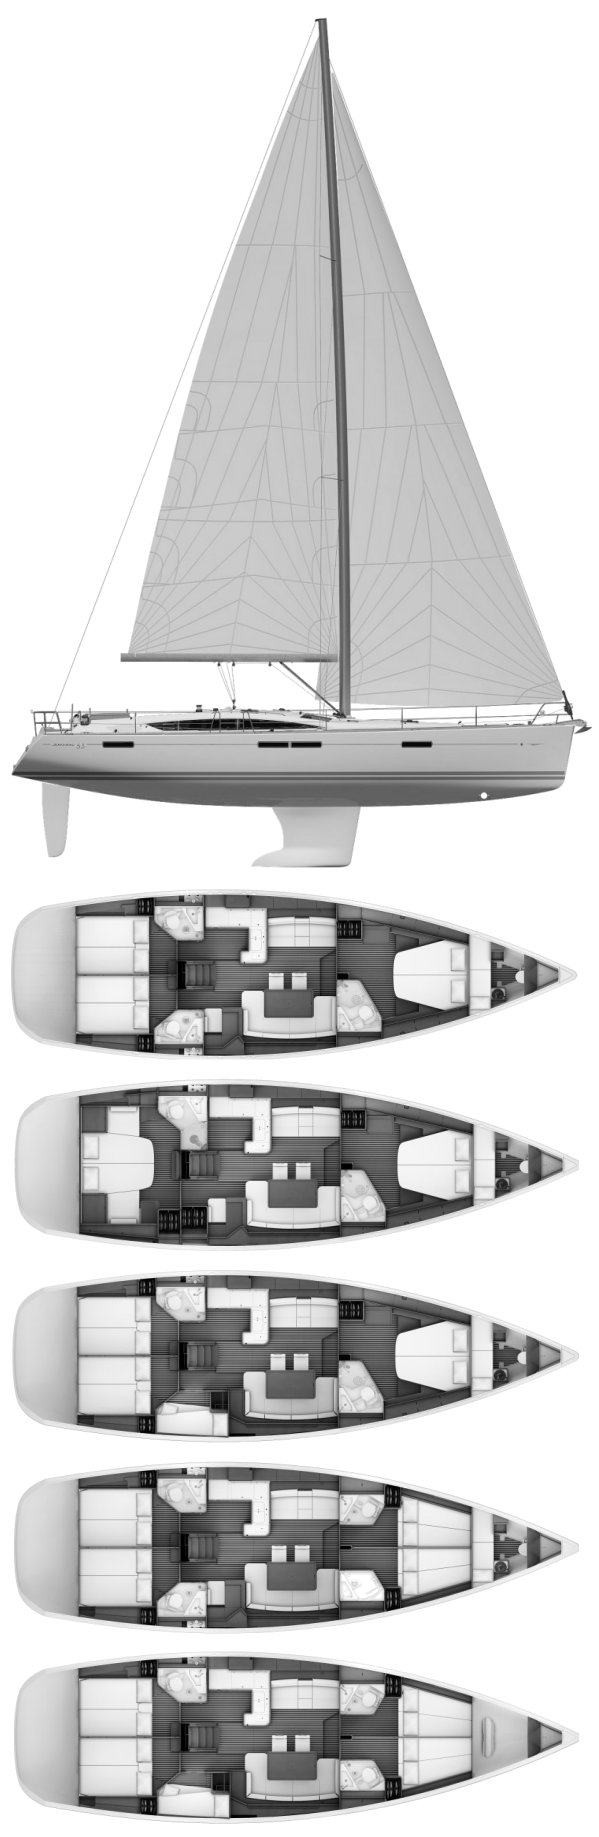 Jeanneau 53 drawing on sailboatdata.com